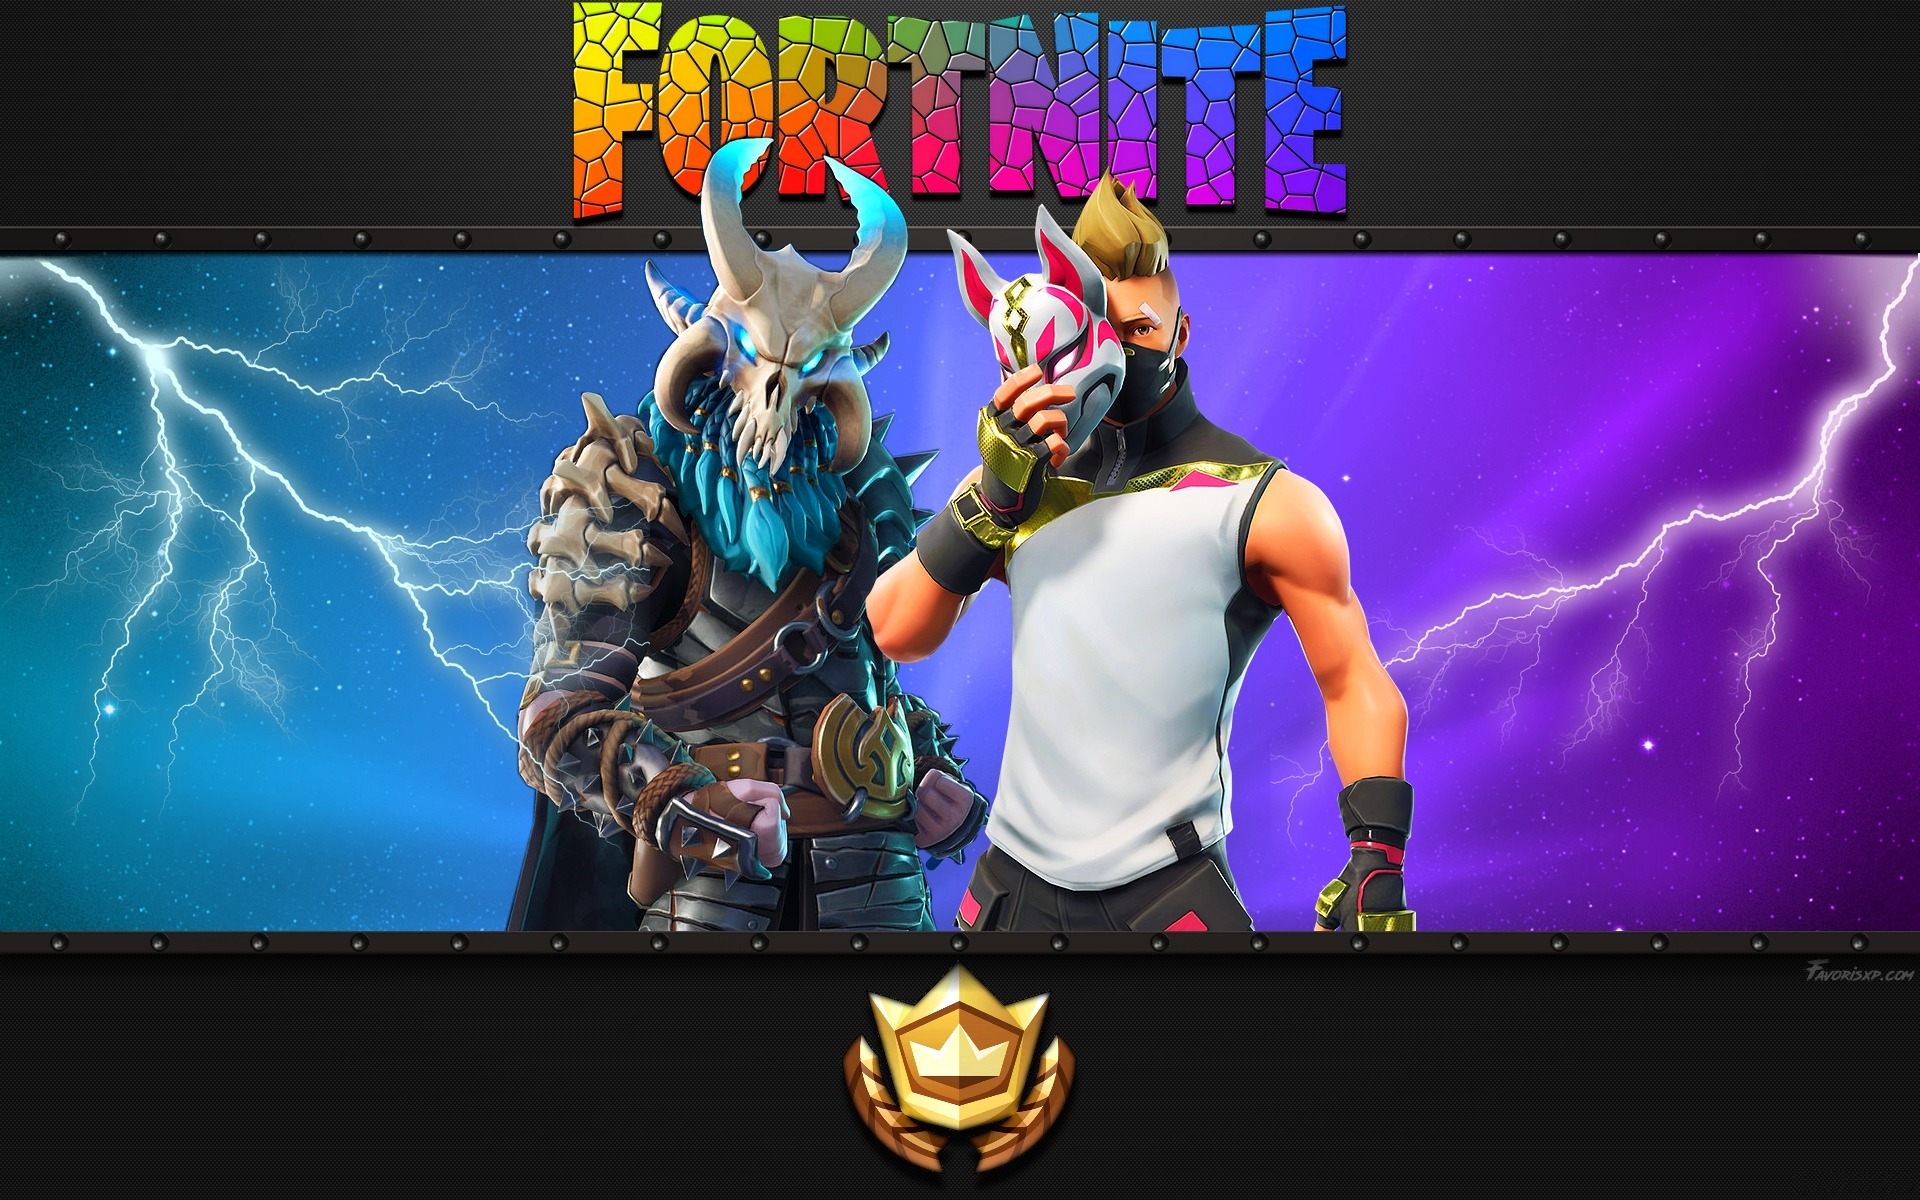 17 Wingtip Fortnite Wallpapers On Wallpapersafari